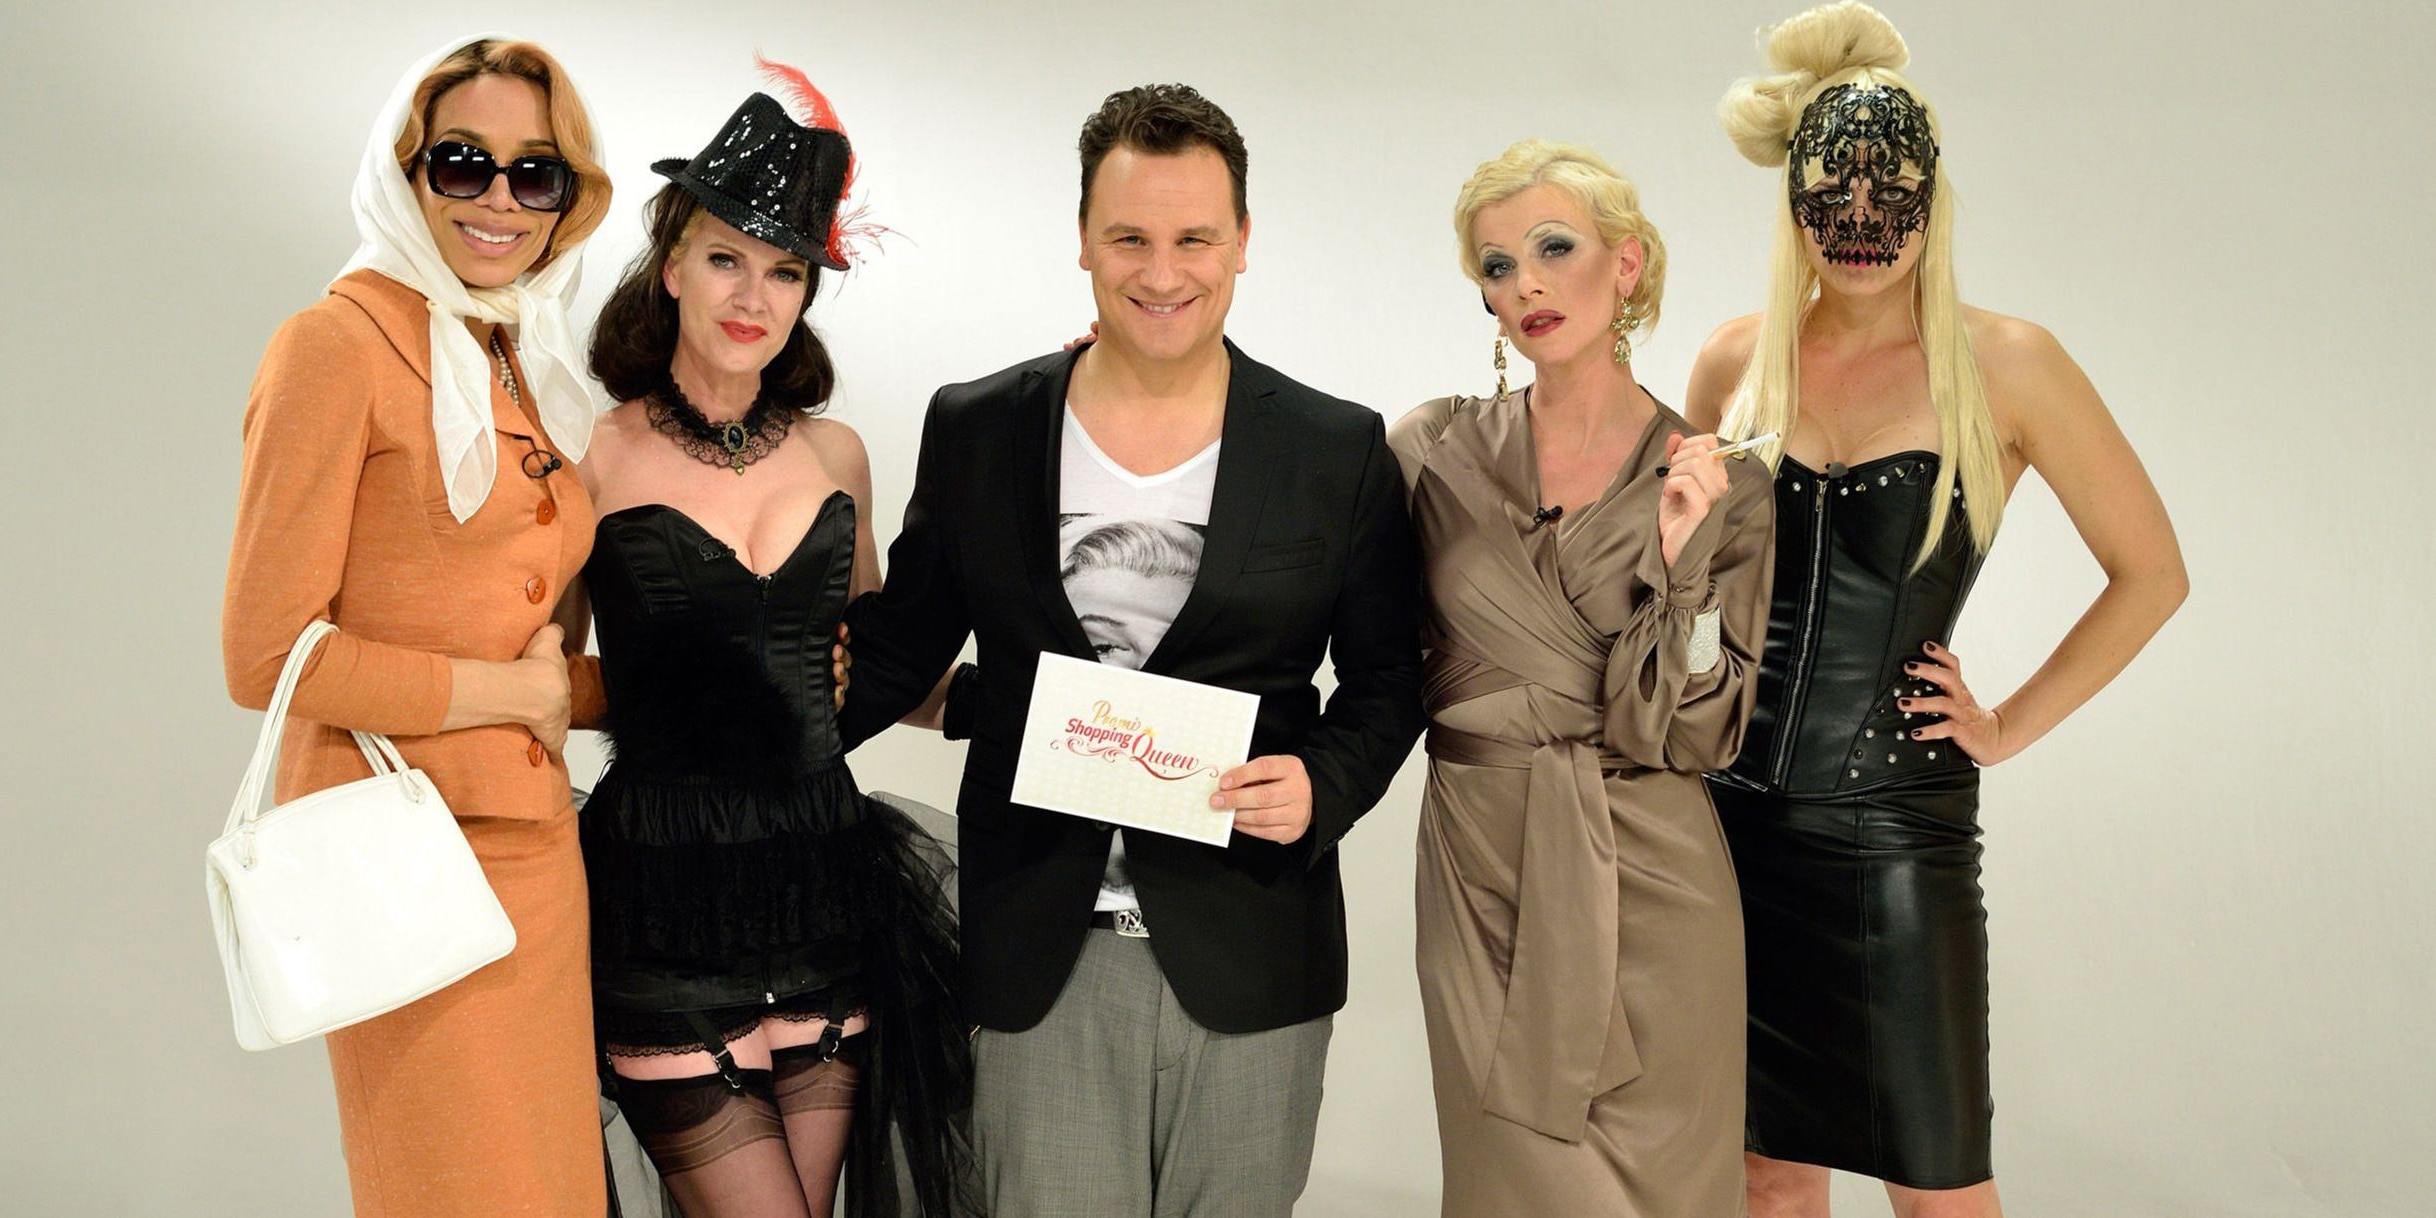 """Promi Shopping Queen"" mit Lorielle London, Anna Heesch, Eva Habermann und Nina Bott! - TV News"